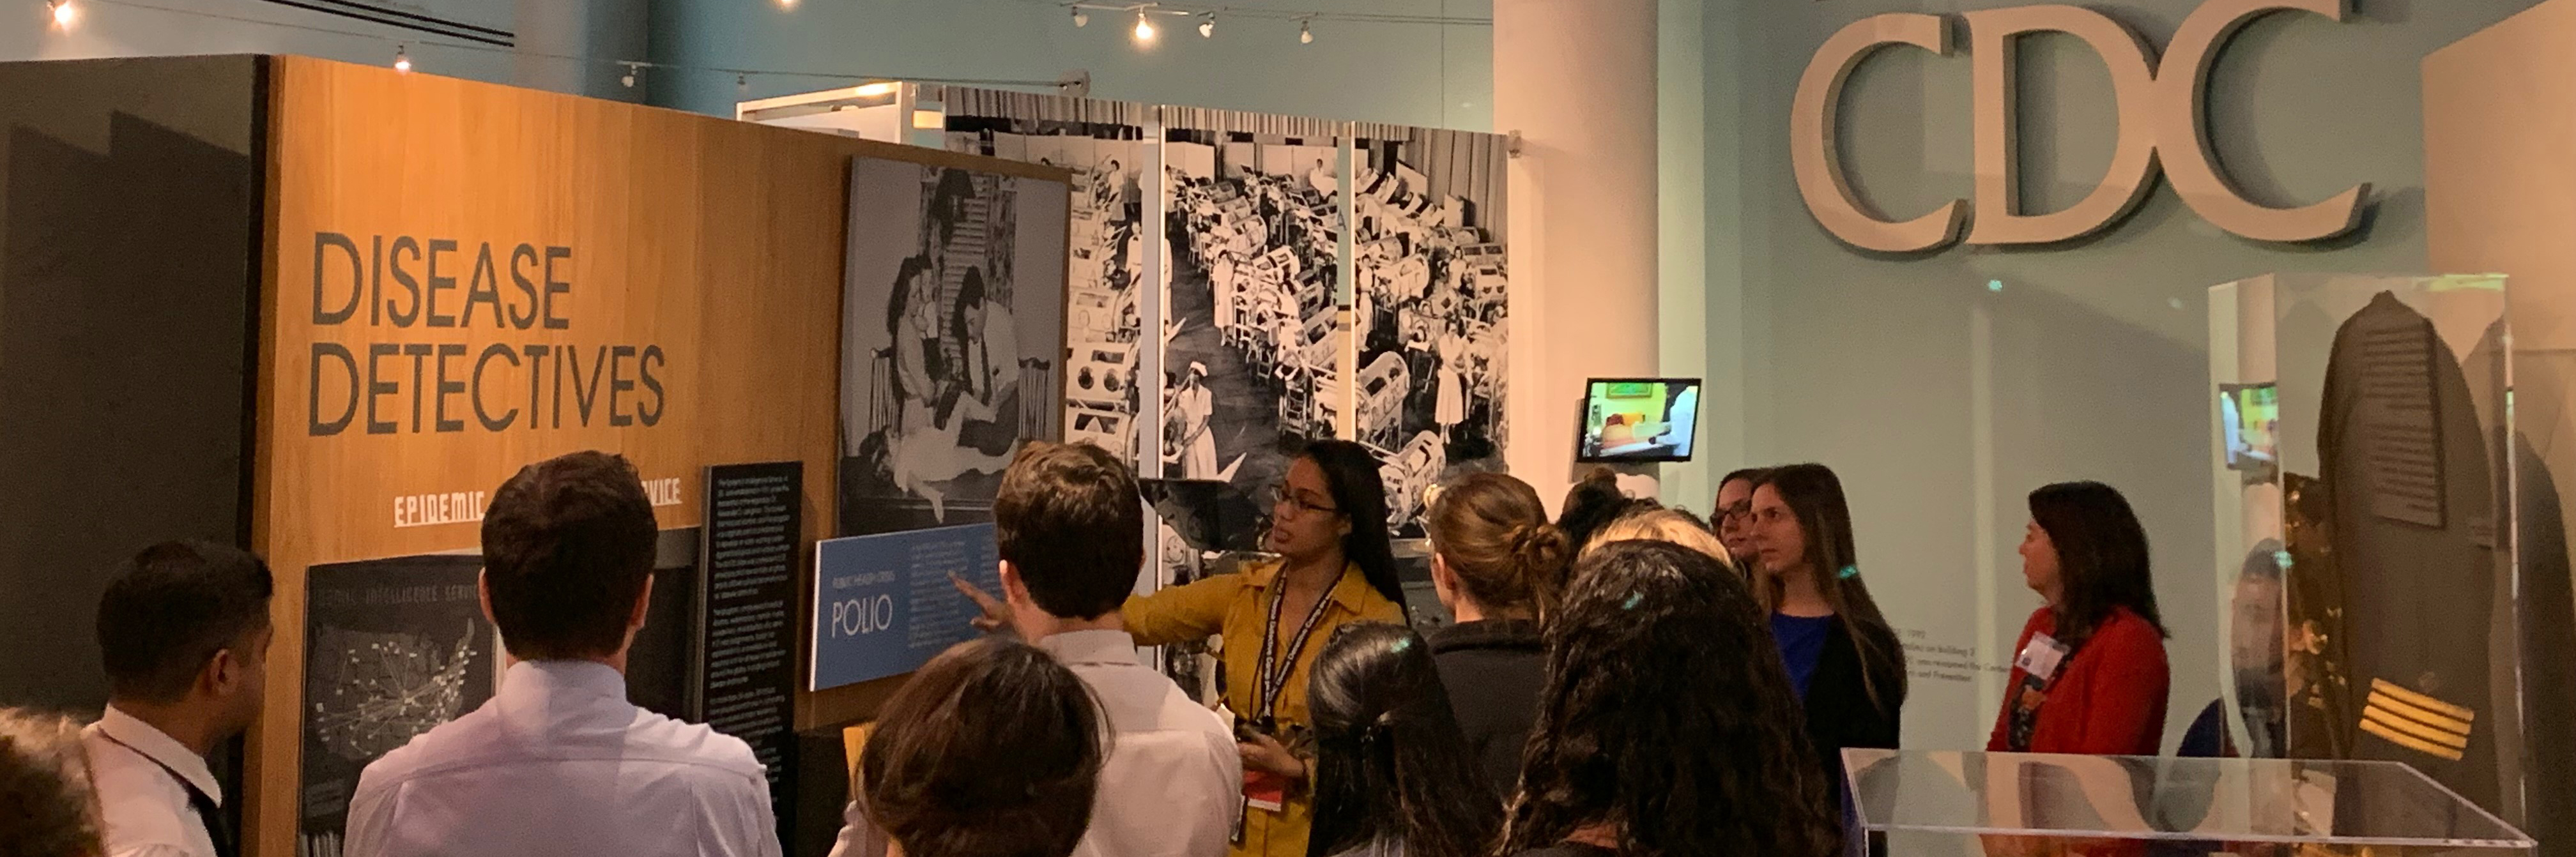 EEP students learn about the history of CDC during a visit to the Edward J. Sencer CDC Museum